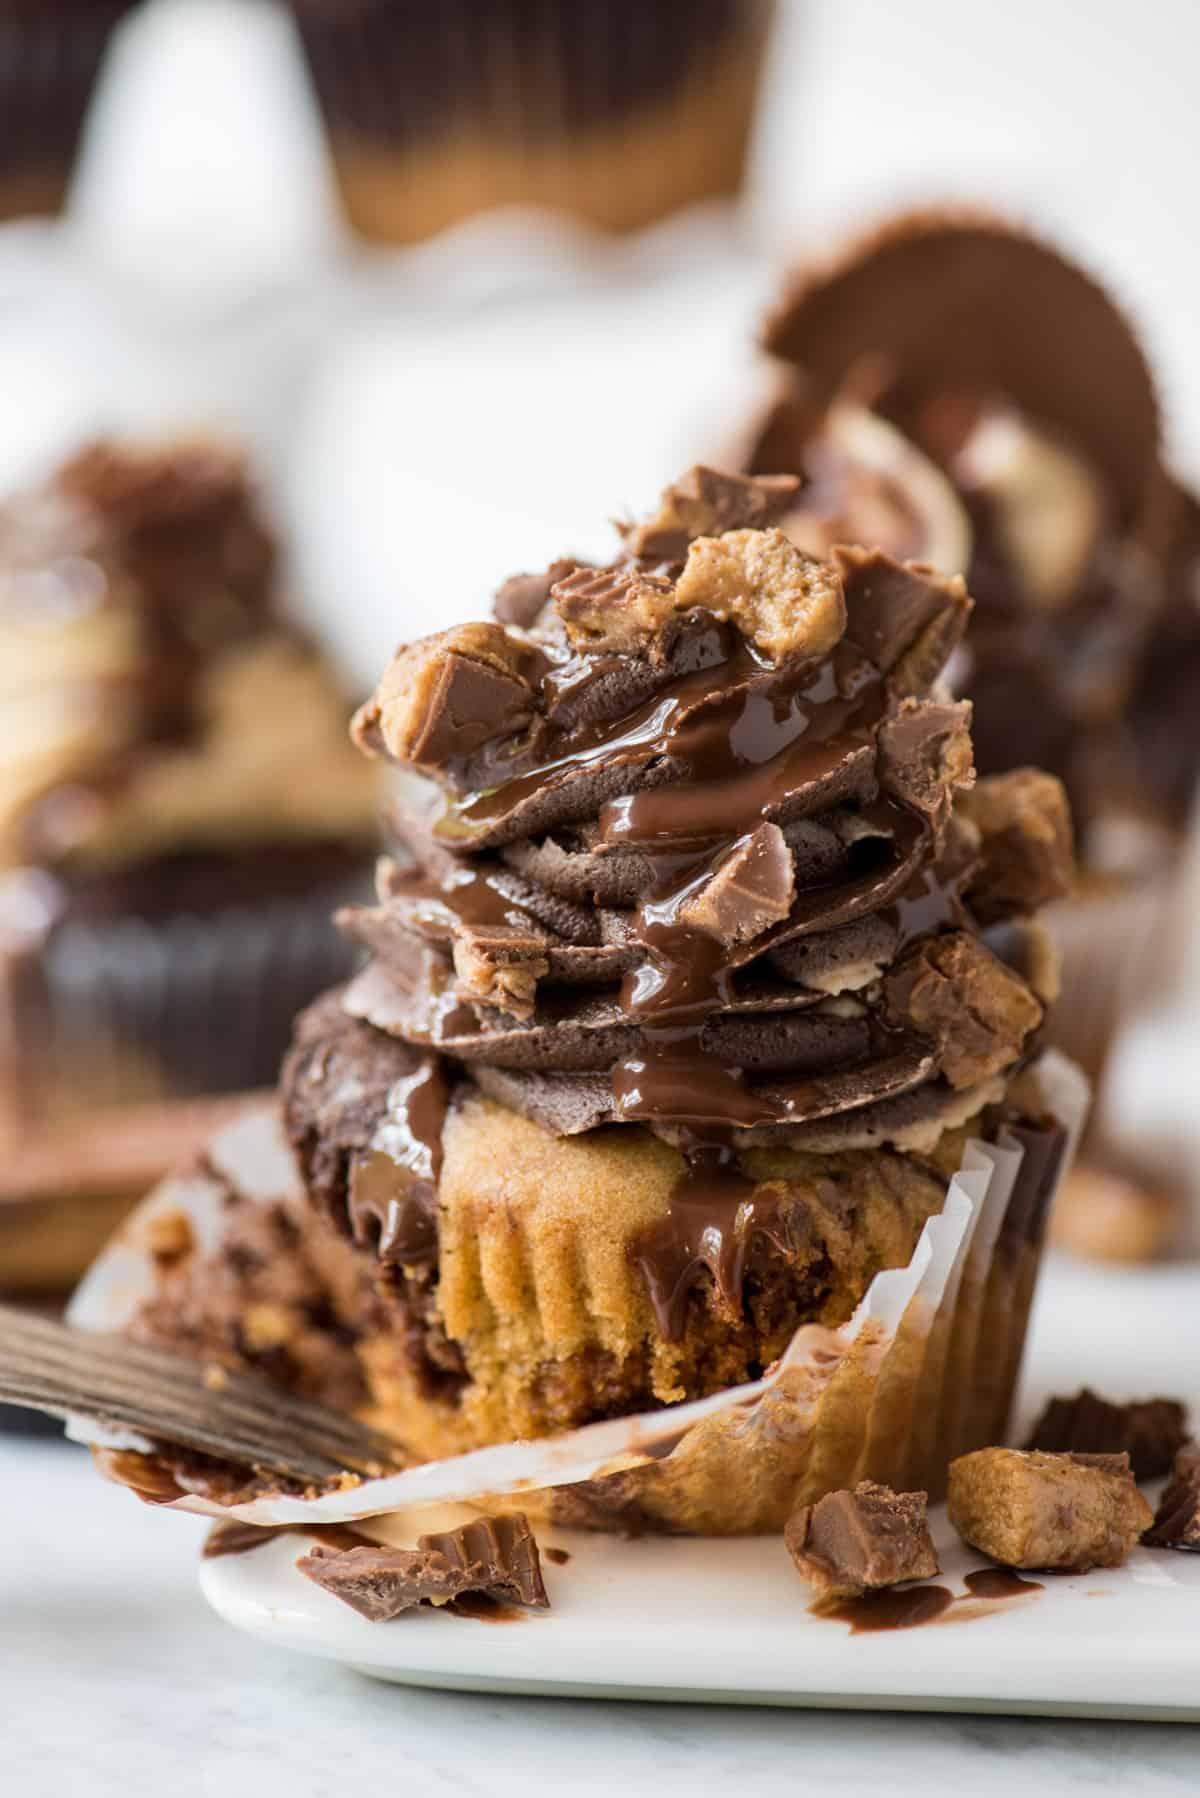 chocolate peanut butter cupcake with swirled chocolate peanut butter frosting topped with chopped reese's and drizzled with chocolate sauce on white background